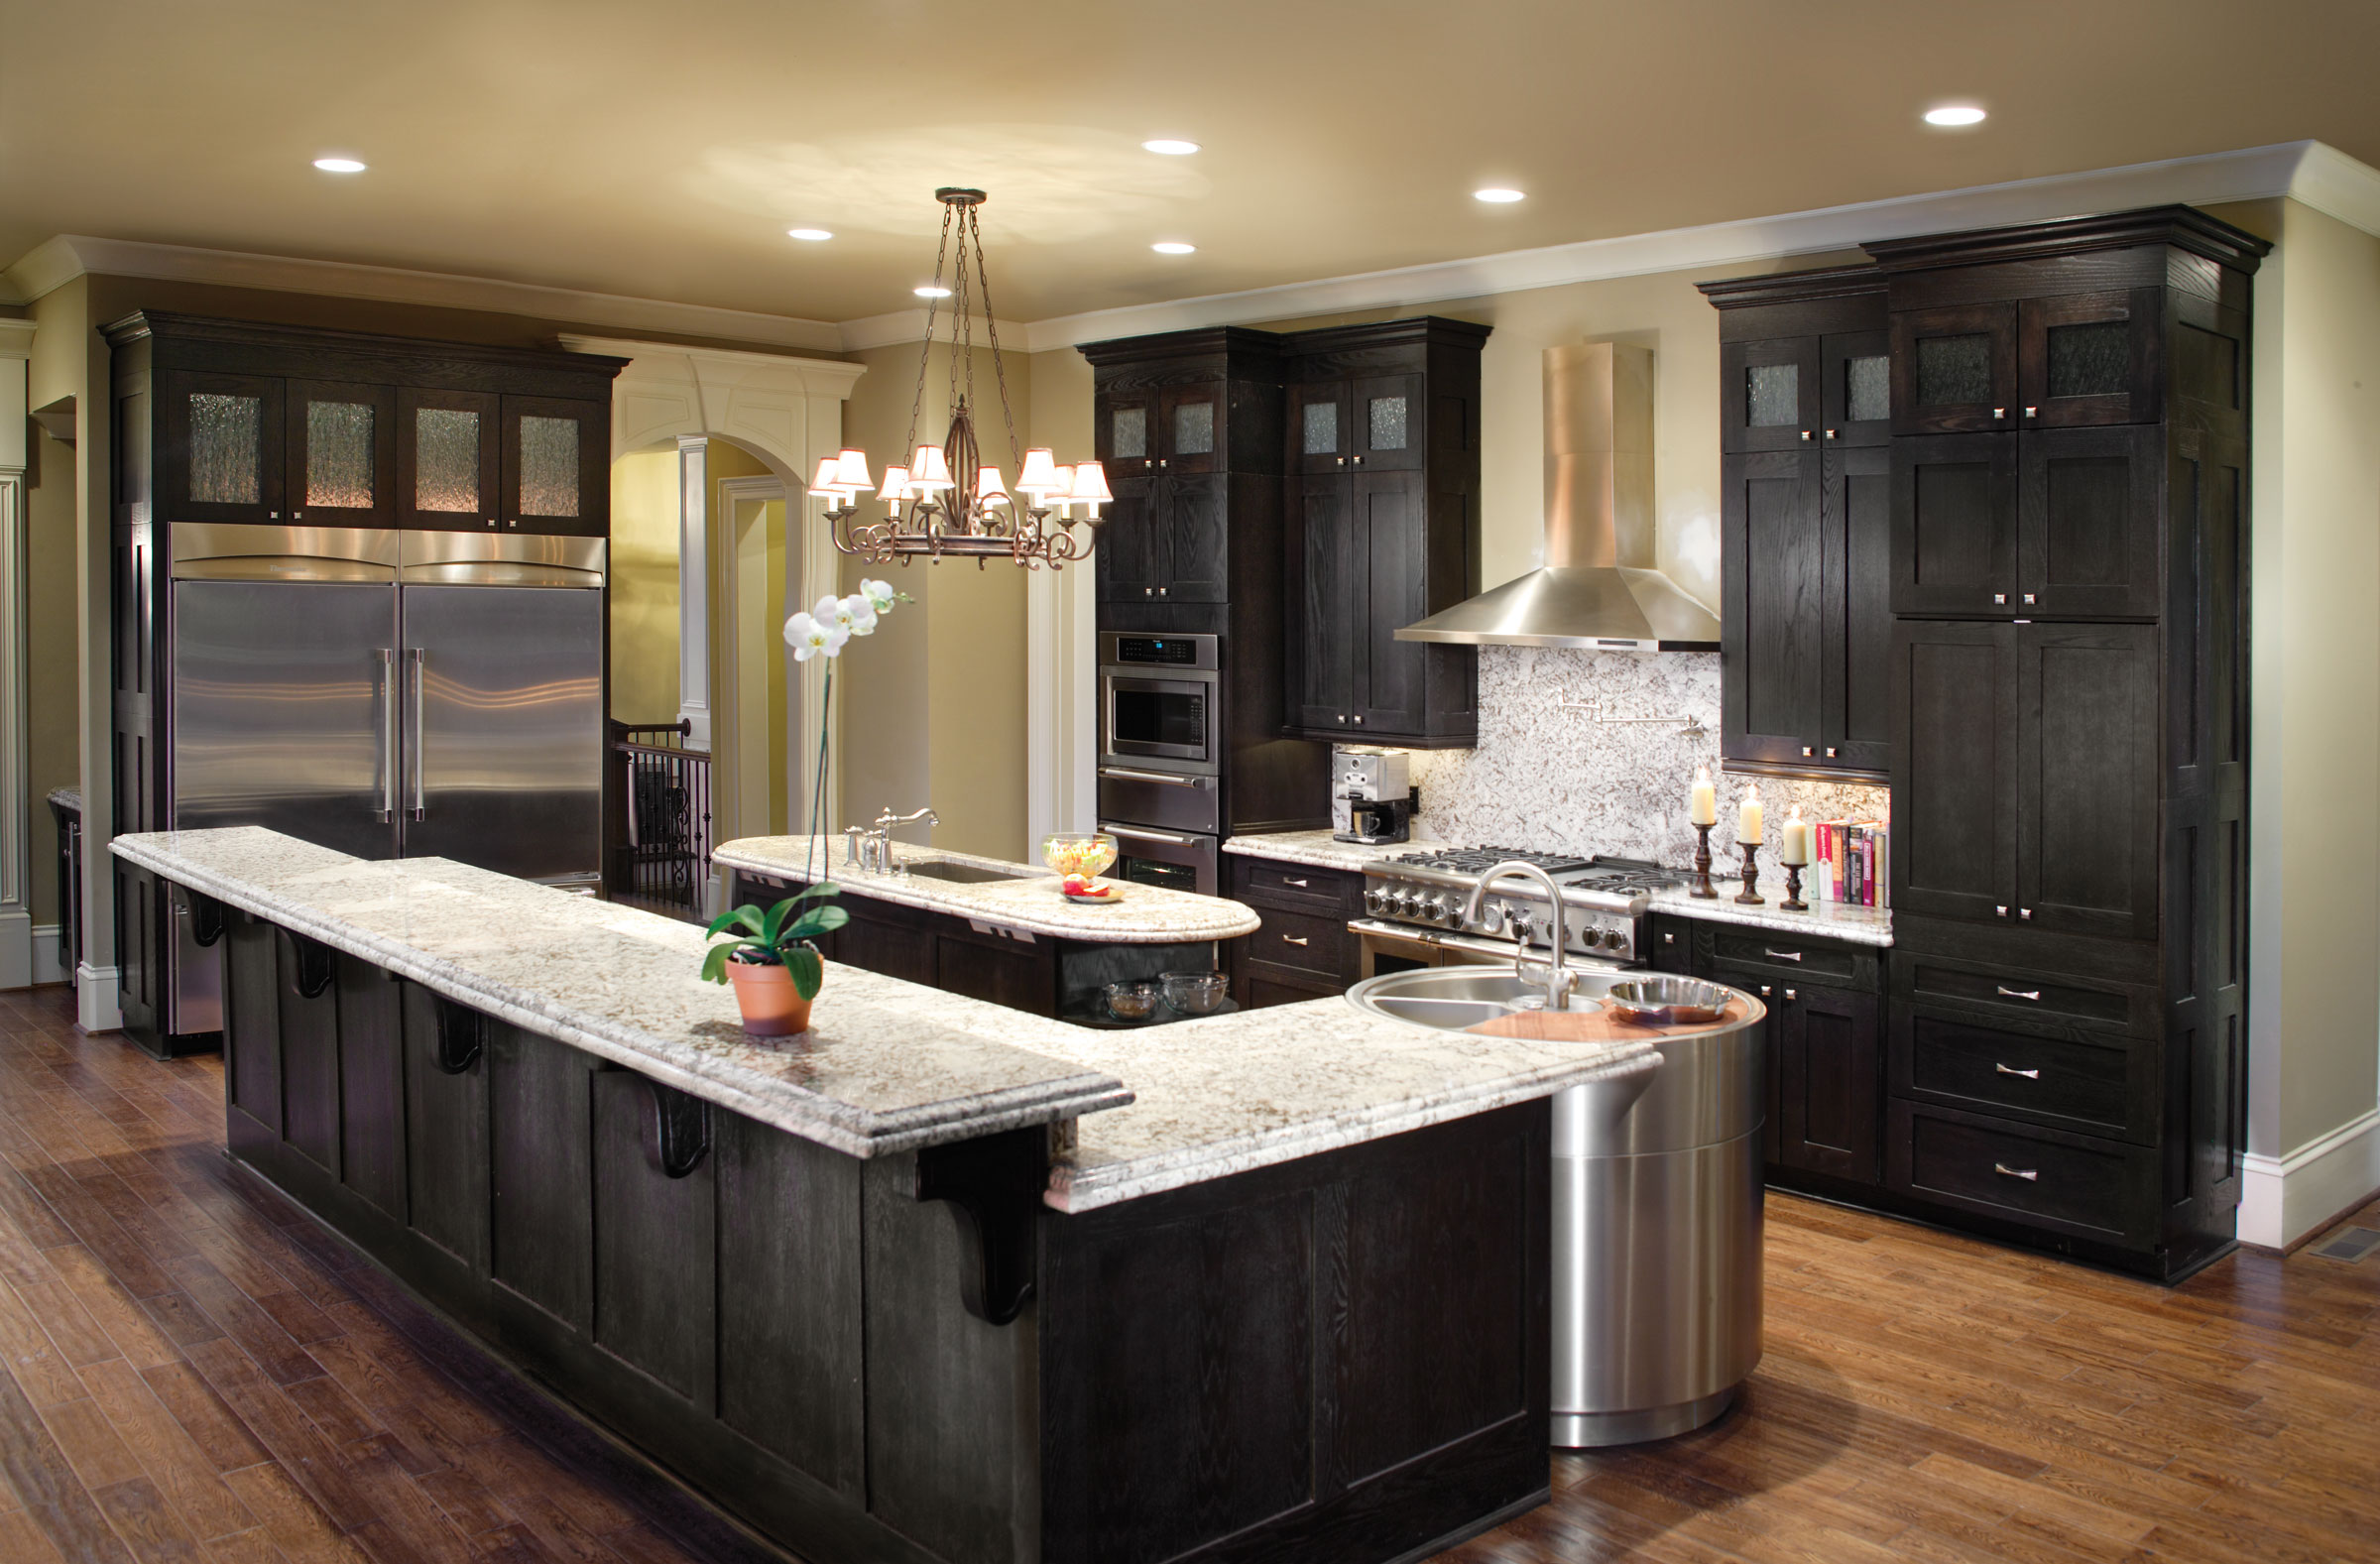 custom kitchen bathroom cabinets company in phoenix az cabinet maker. Interior Design Ideas. Home Design Ideas